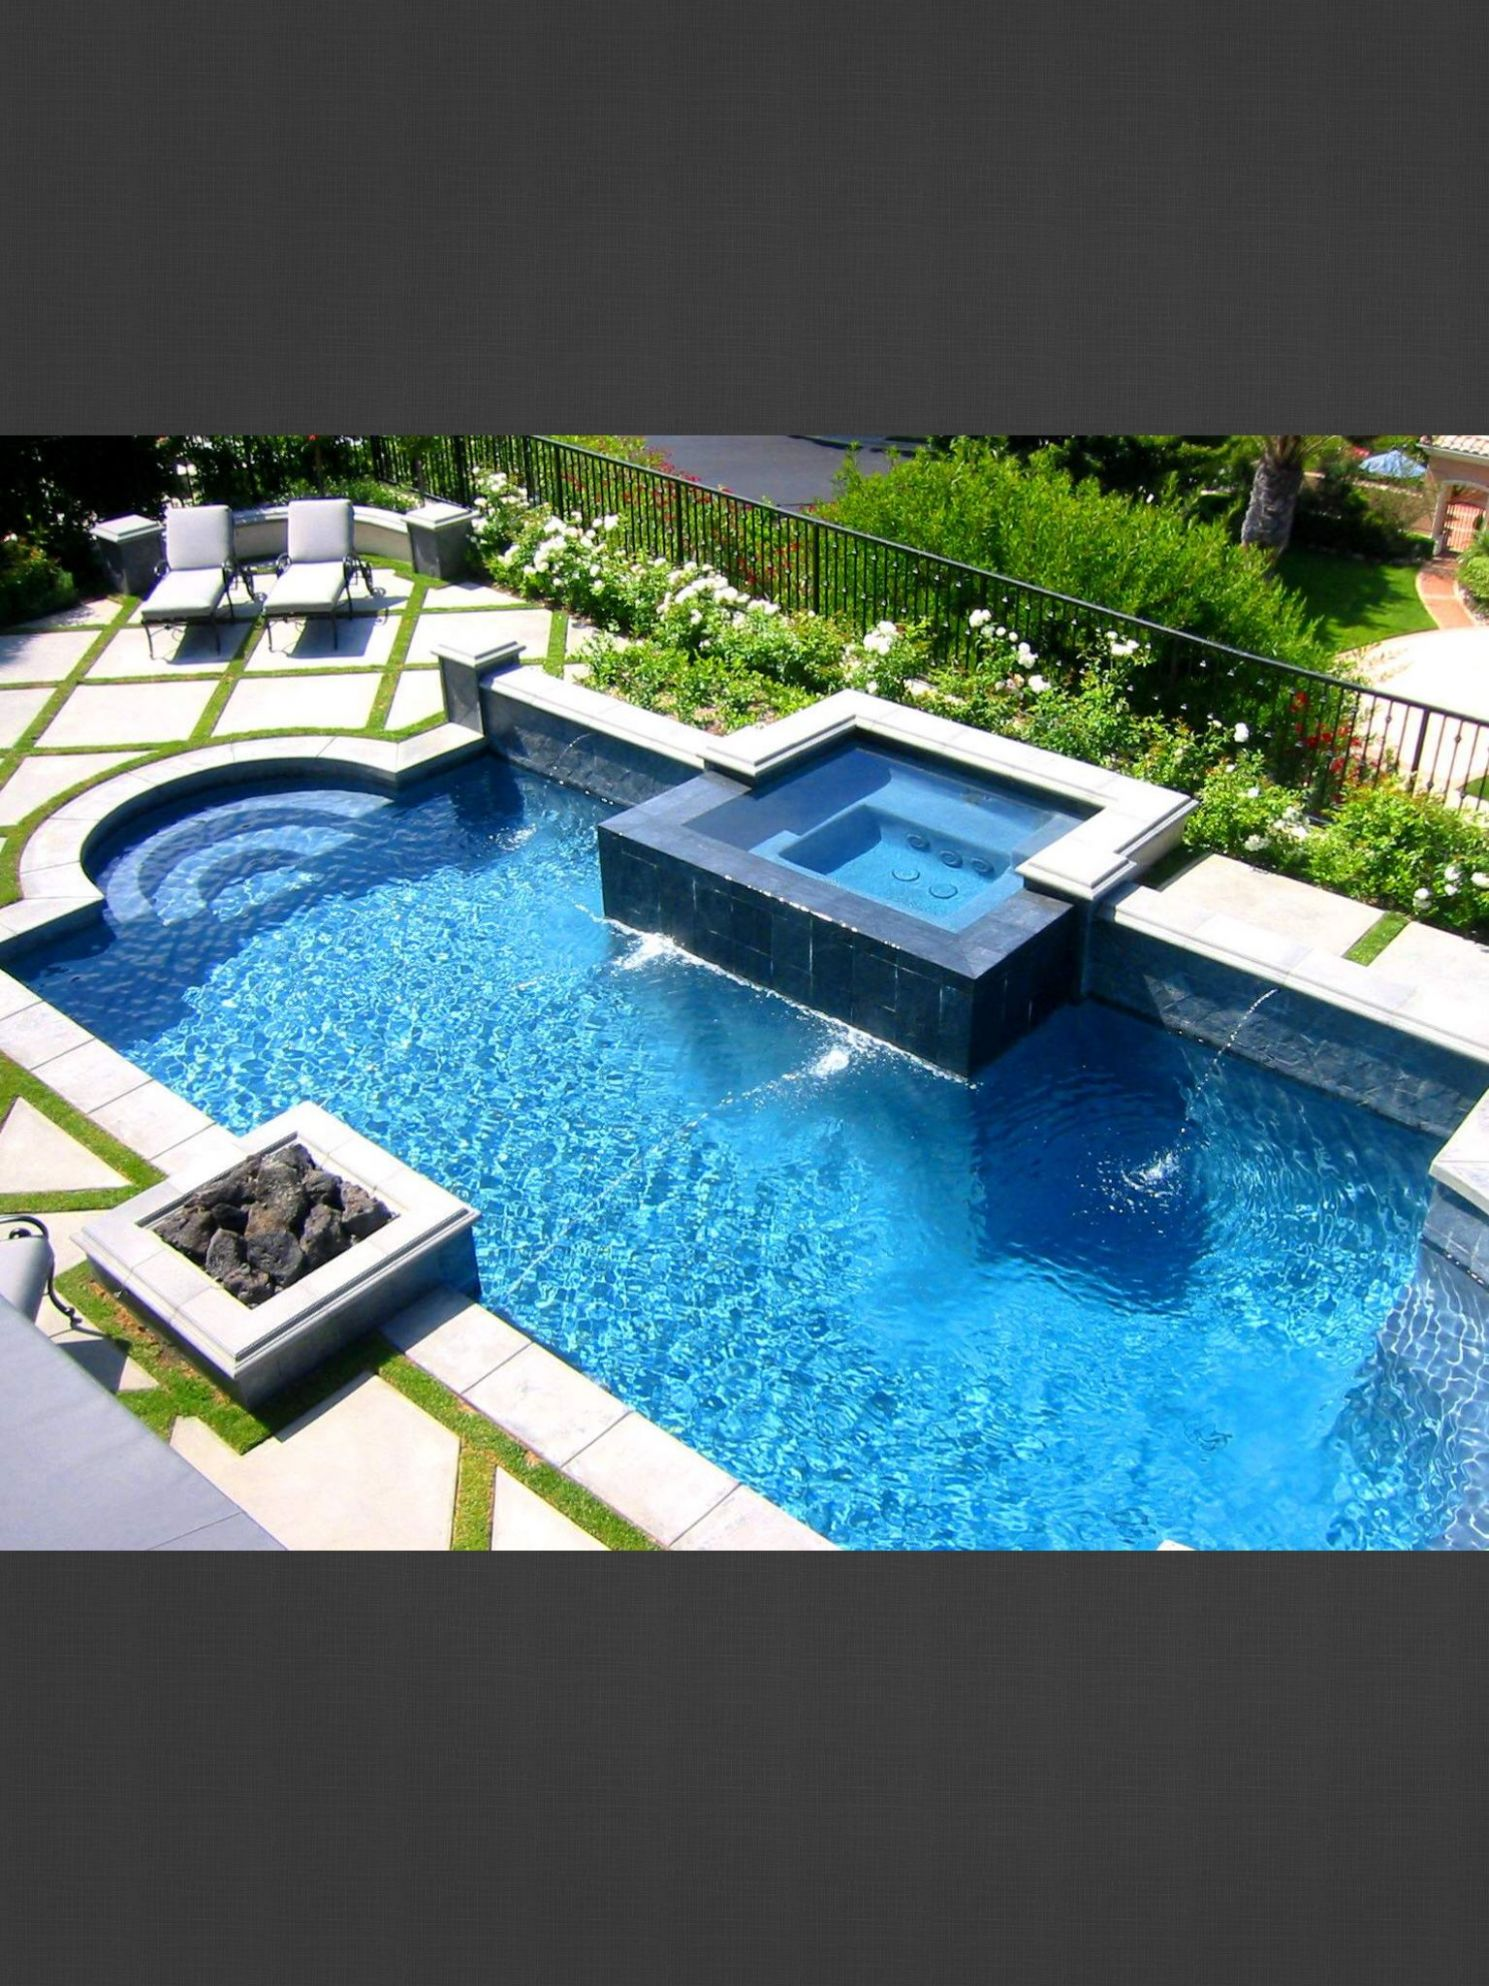 Grass and cement deck around pool   Hot tub garden, Fire pit ..